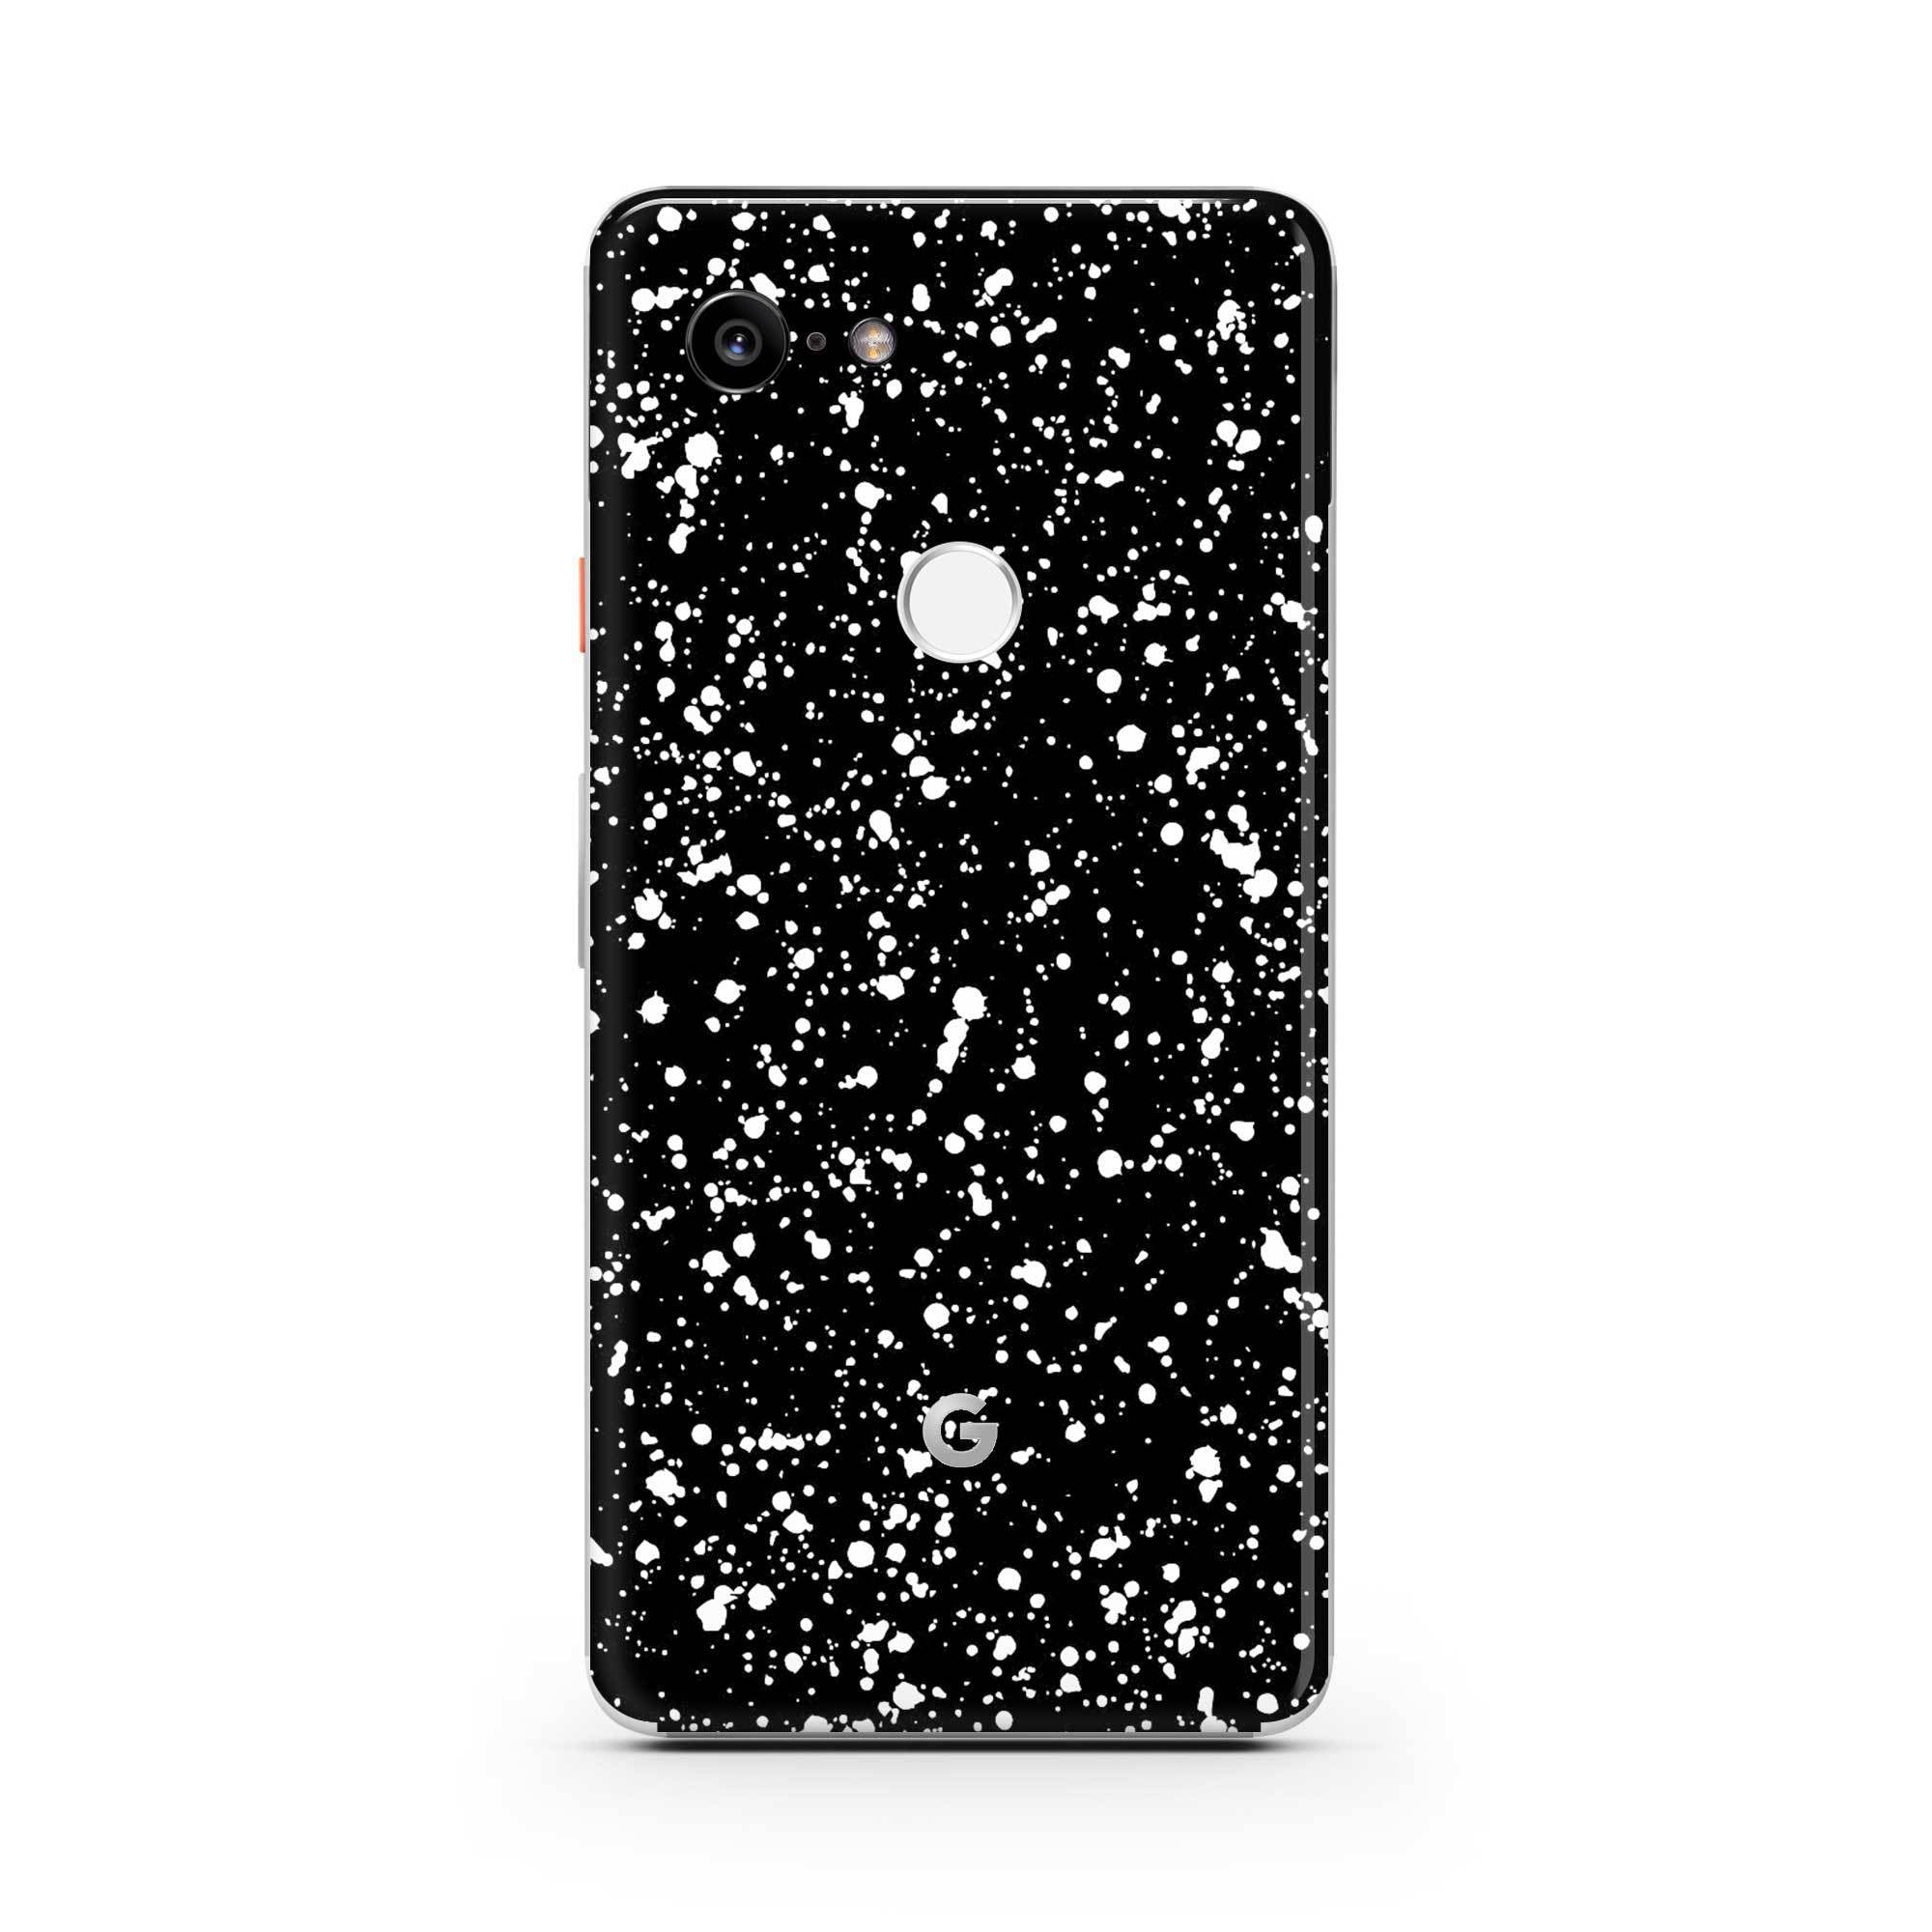 Black Speckle Pixel 3 XL Skin + Case